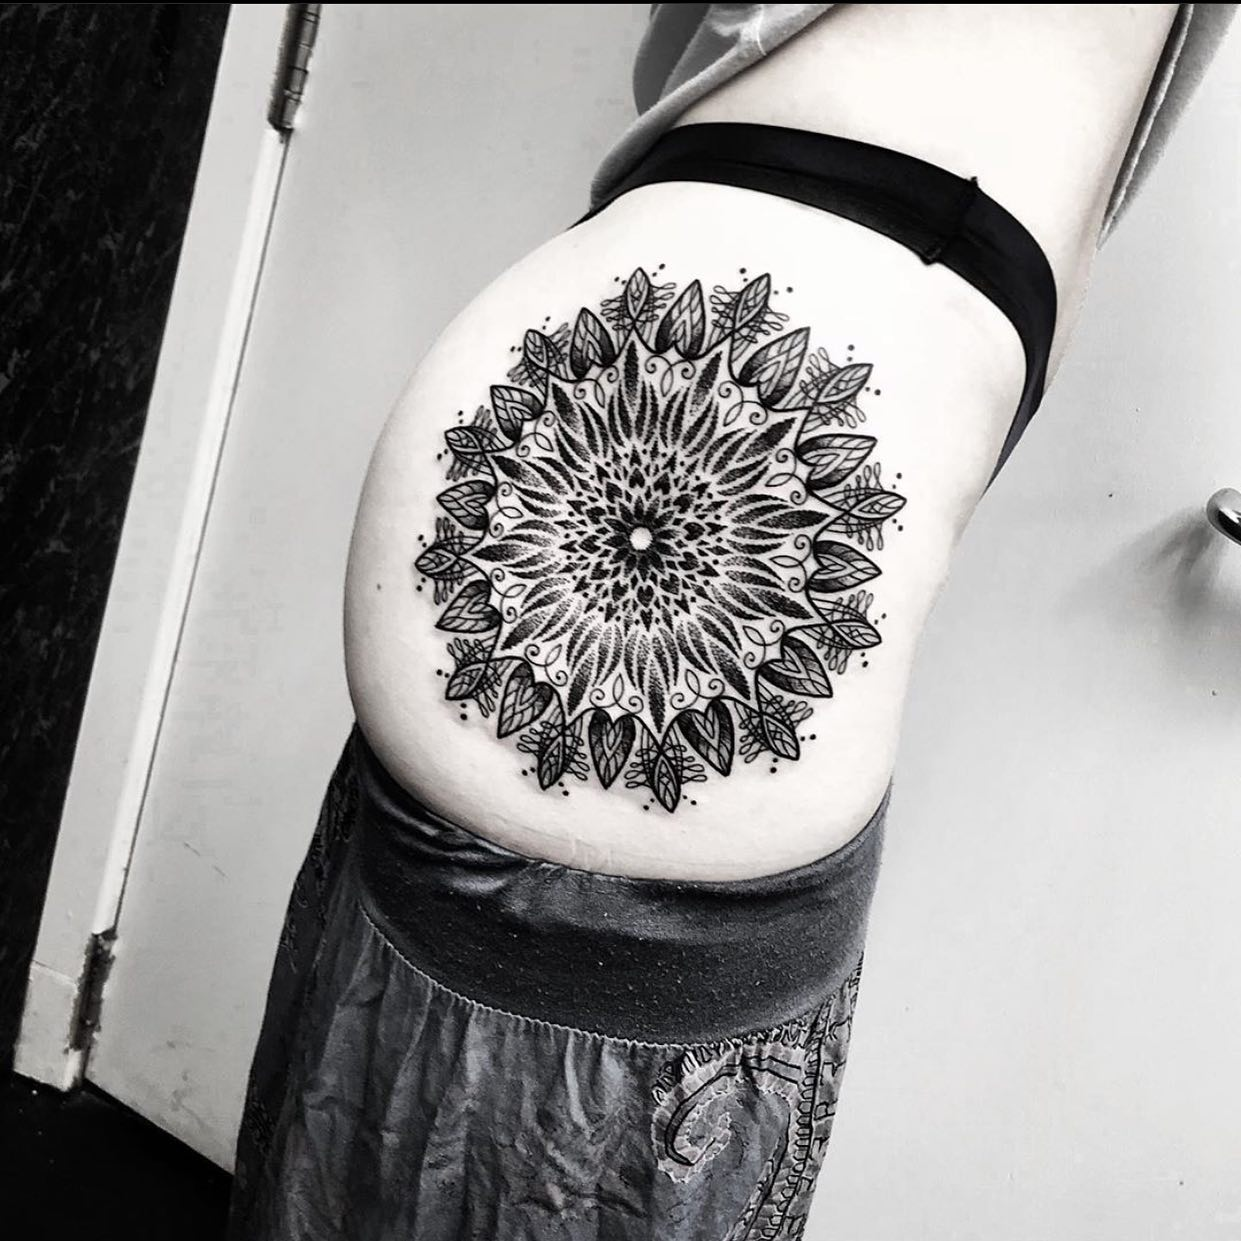 Perfectly executed butt mandala from @marcdiamondtattoo Want one too? Get in touch! ————— ————— uktattooartists uktattoo inked inkedmag skinart skinartmag traditionaltattoo tradworkers colourtattoos scotland edinburghtattoo edinburghlife scotlandtattoo uktta oldschooltattoo fineline cleanwork inkdup inkd skindeep performer besttattoos blackclaw girlswithtattoos uktattoosupplies blackclaw solidink starbritecolors studioxiii @barber_dts @easytattoo_uk @eternalink @dynamiccolor @lockdownneedle @stencilstuff